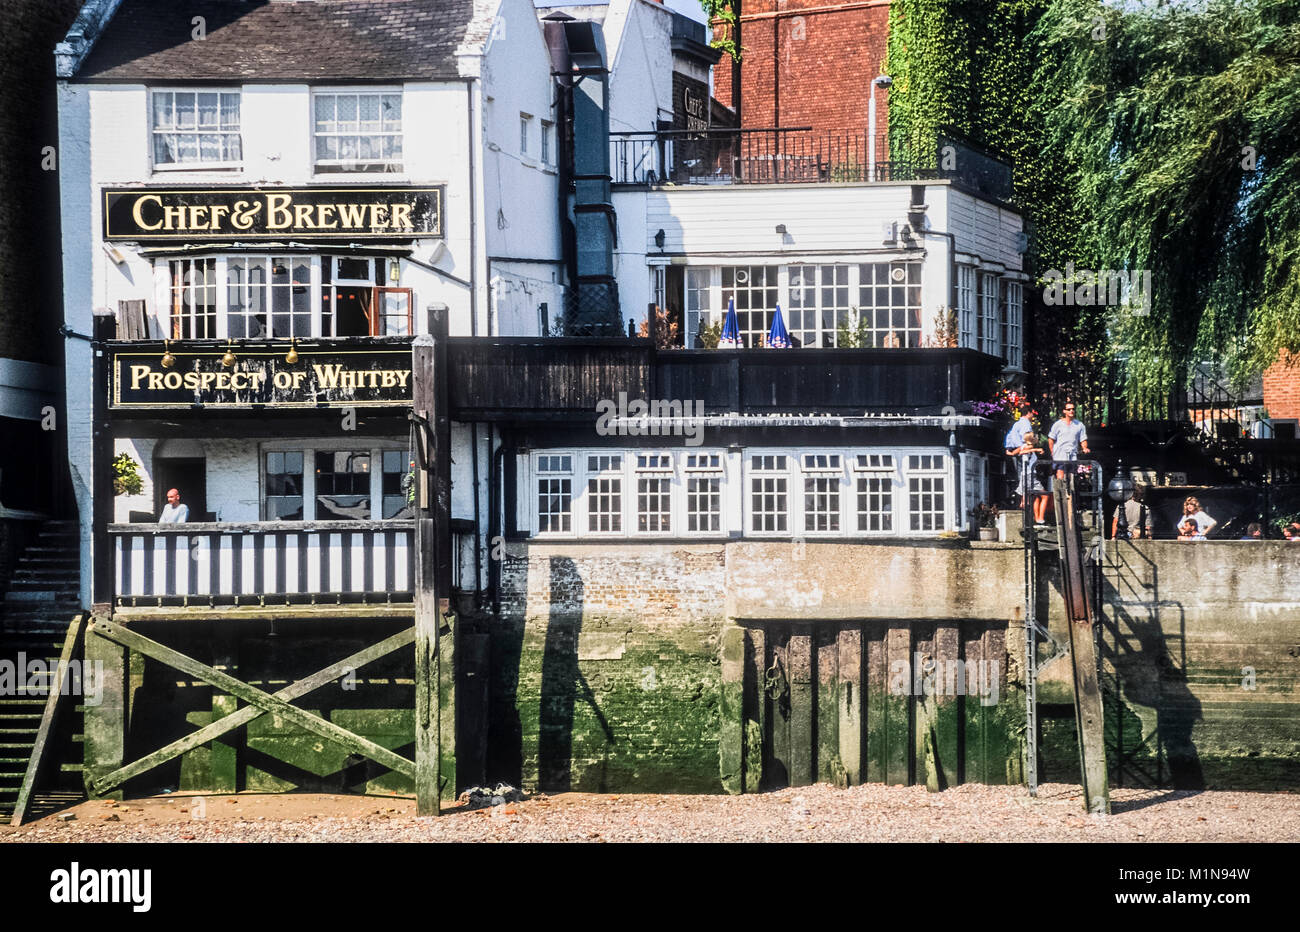 The Prospect of Whitby one of the oldest public houses in London and the oldest riverside pub on the Thames. - Stock Image